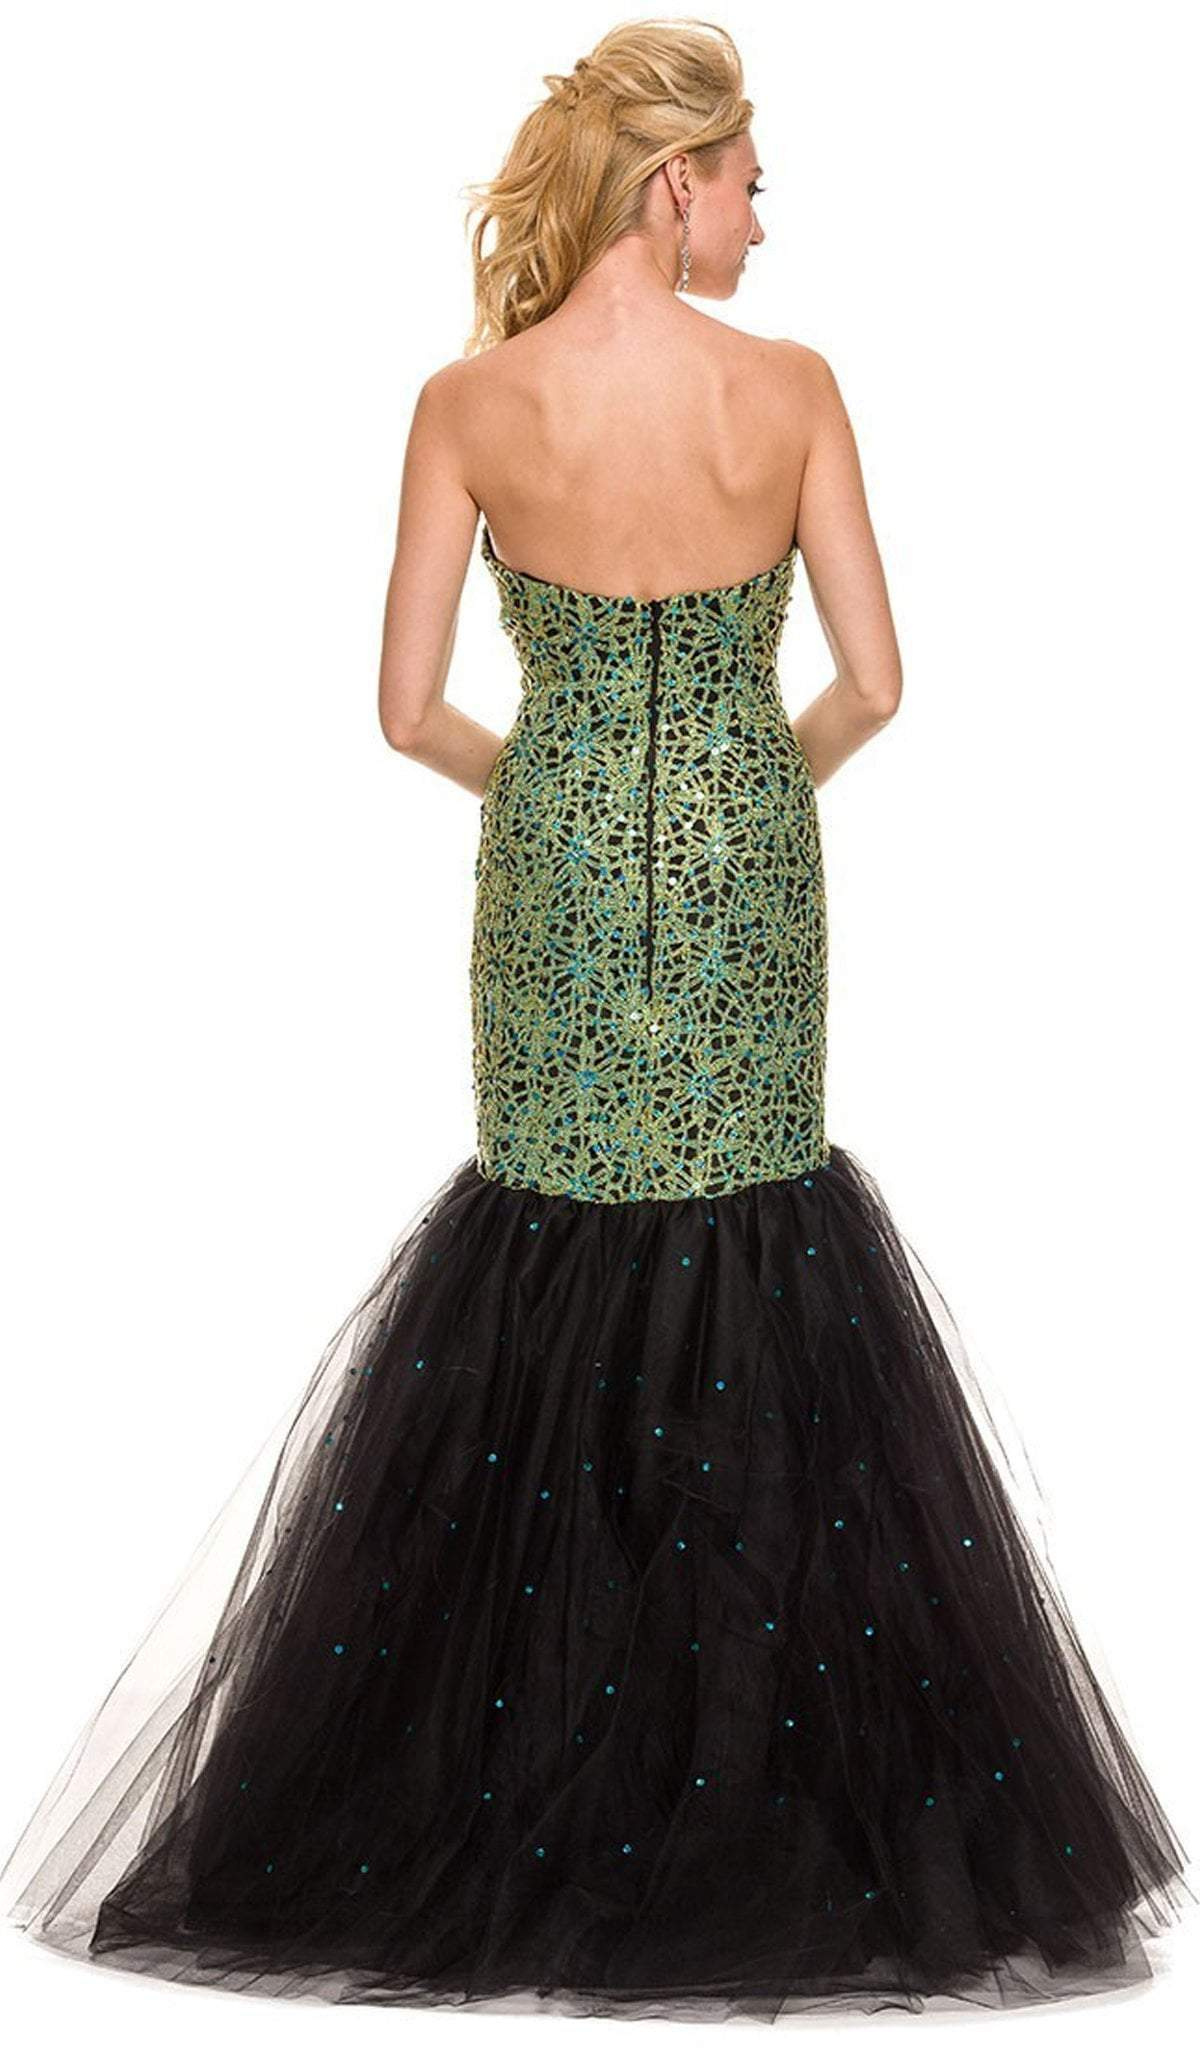 Nox Anabel - Embellished Strapless Mermaid Dress 3123SC